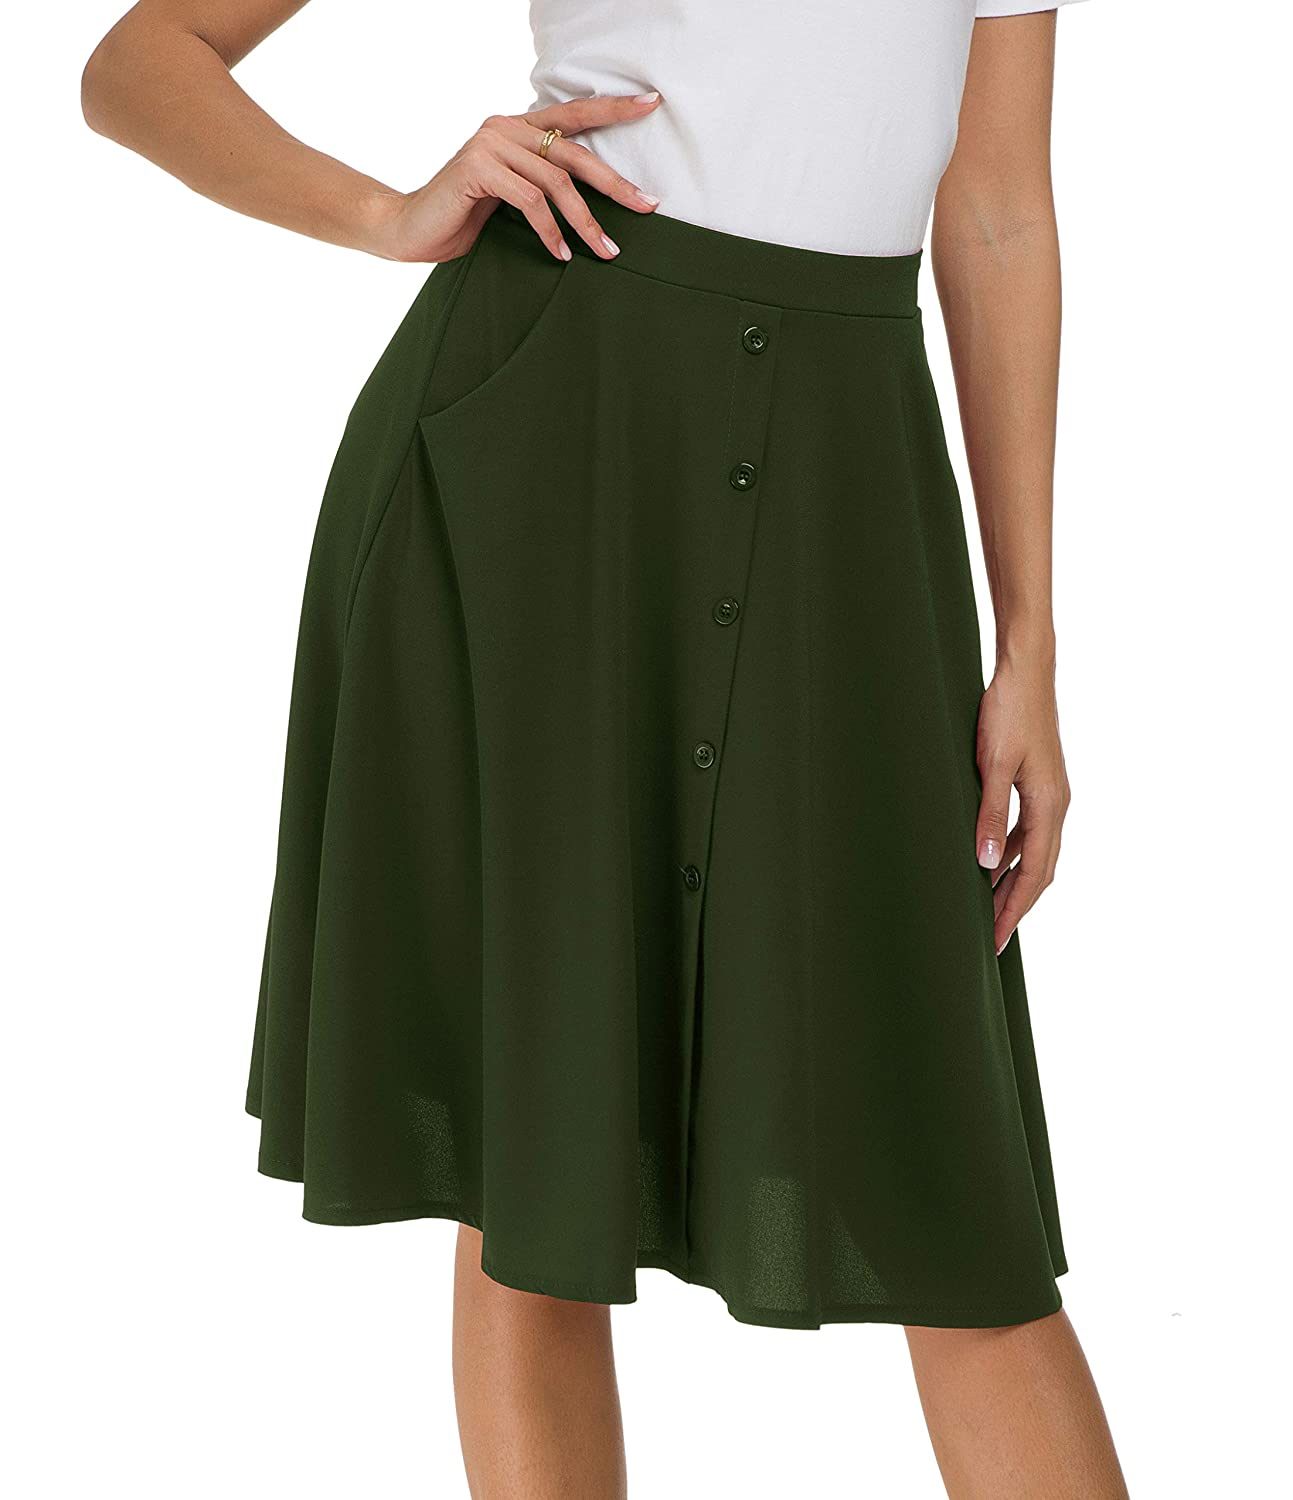 0f24ba8e1 Afibi Womens High Waisted A Line Pleated Midi Skirt Button Front Skirts  with Pocket at Amazon Women's Clothing store: